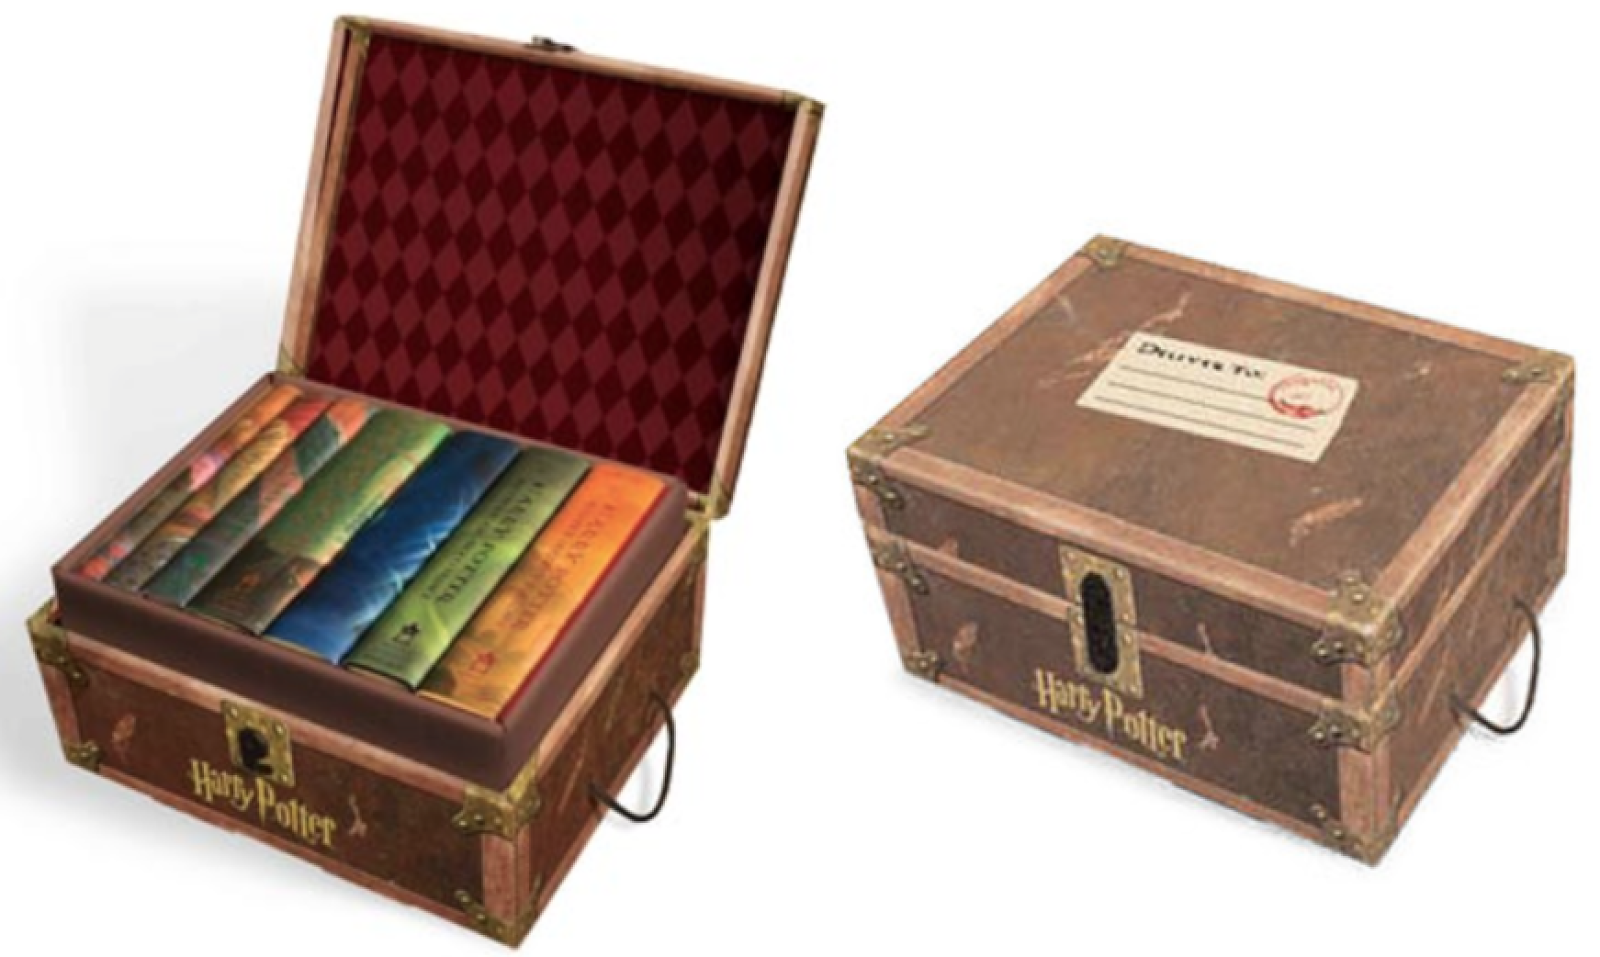 Walmart.com:  Harry Potter Hard Cover Boxed Set (books 1-7) in Limited Edition Trunk Box = $90 + FREE Shipping! Regularly $195!